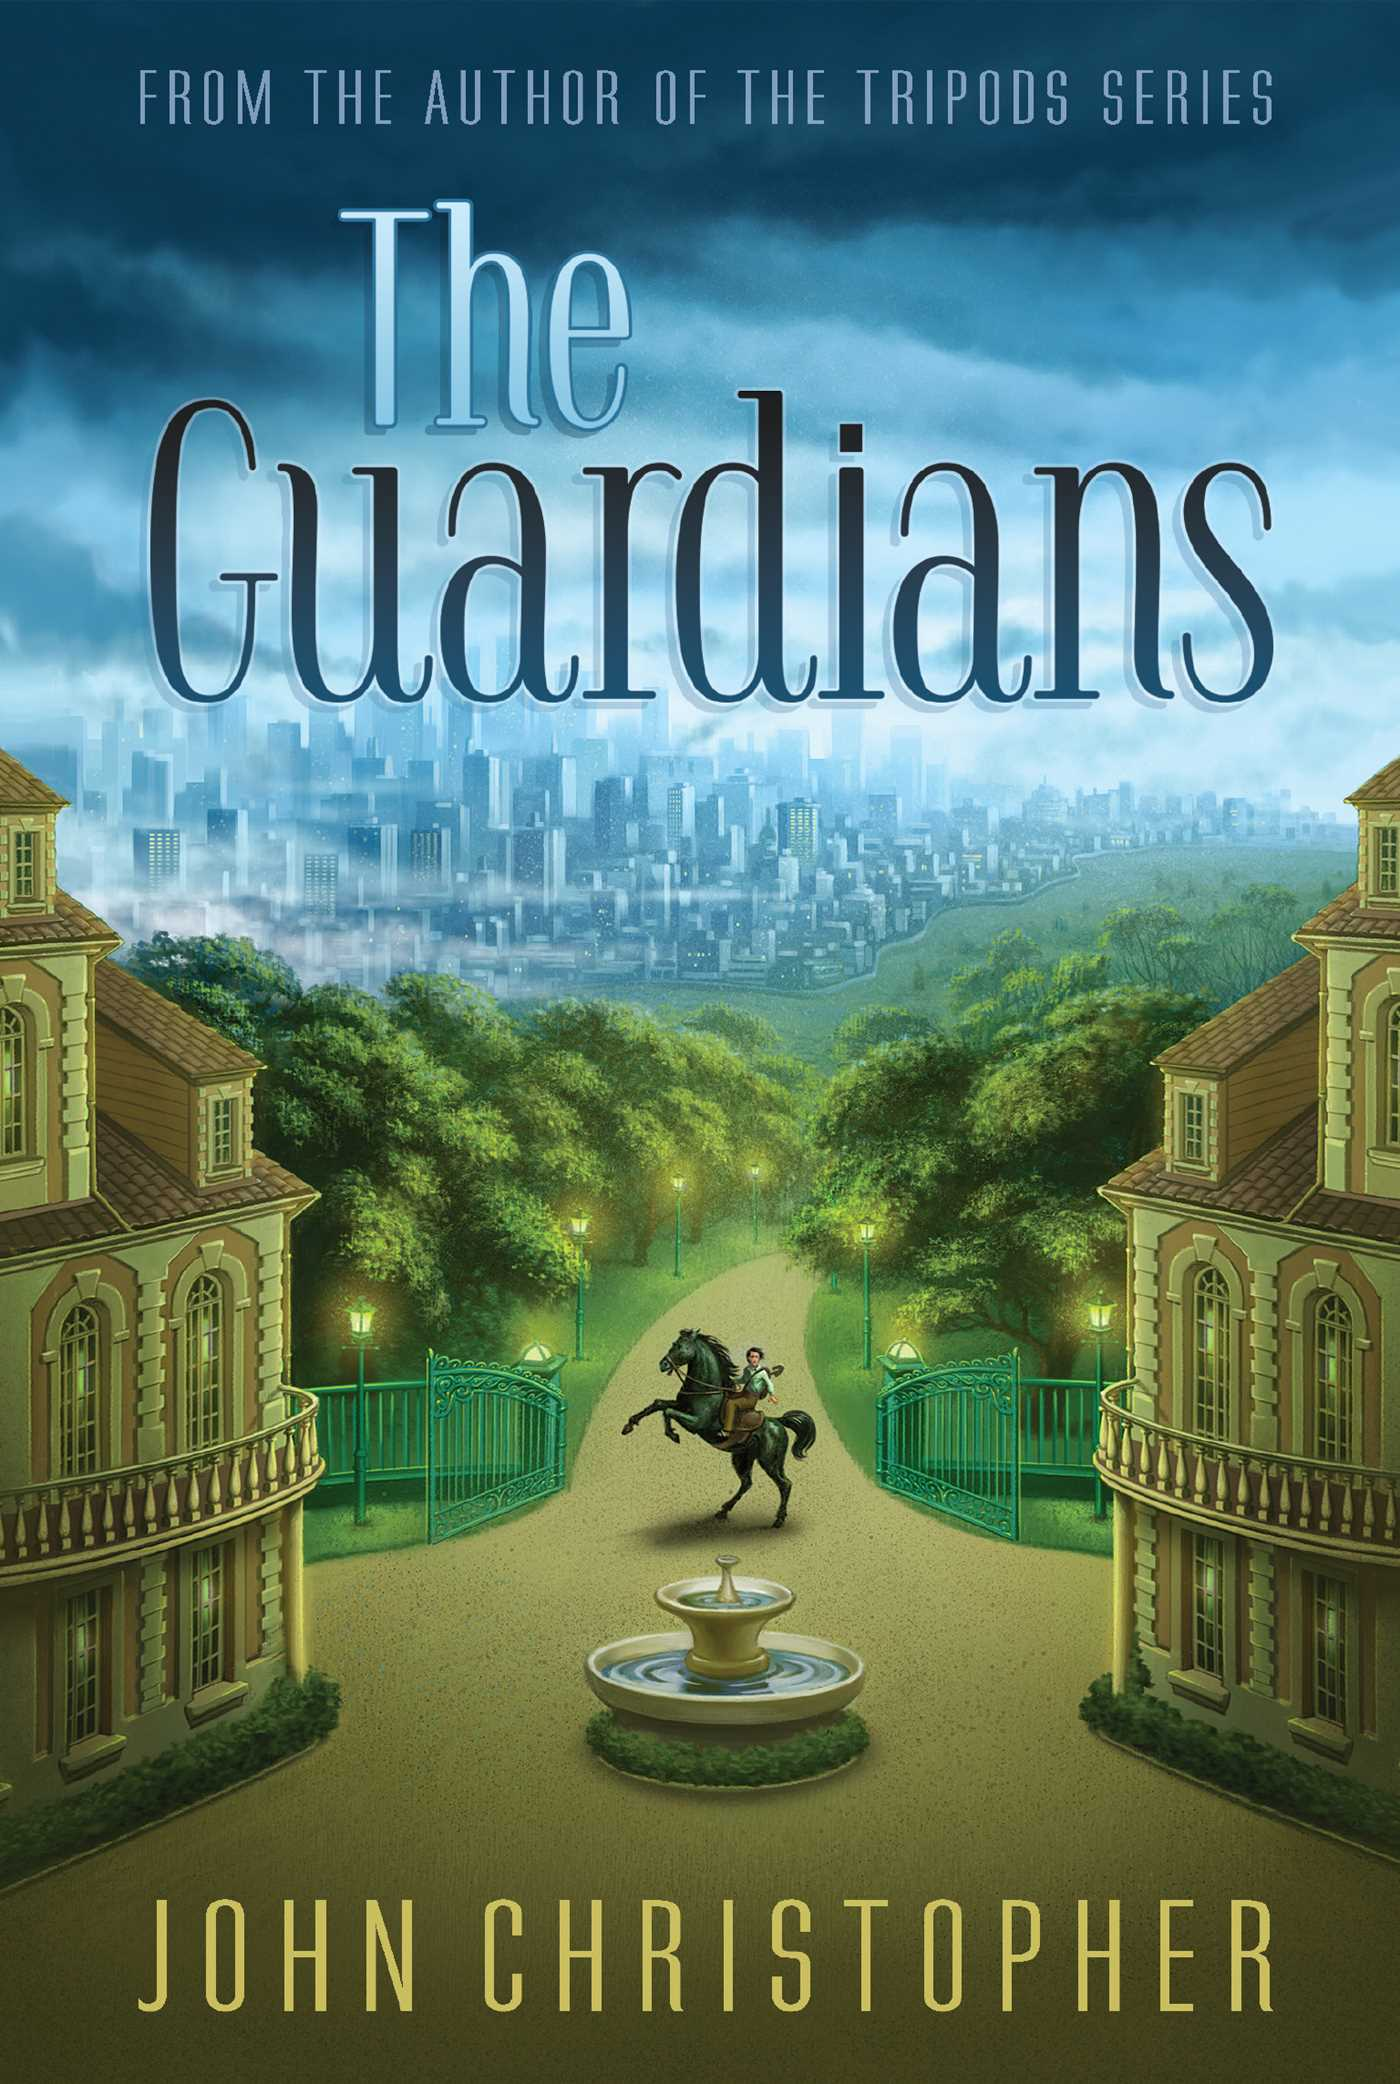 Book Cover Image (jpg): The Guardians